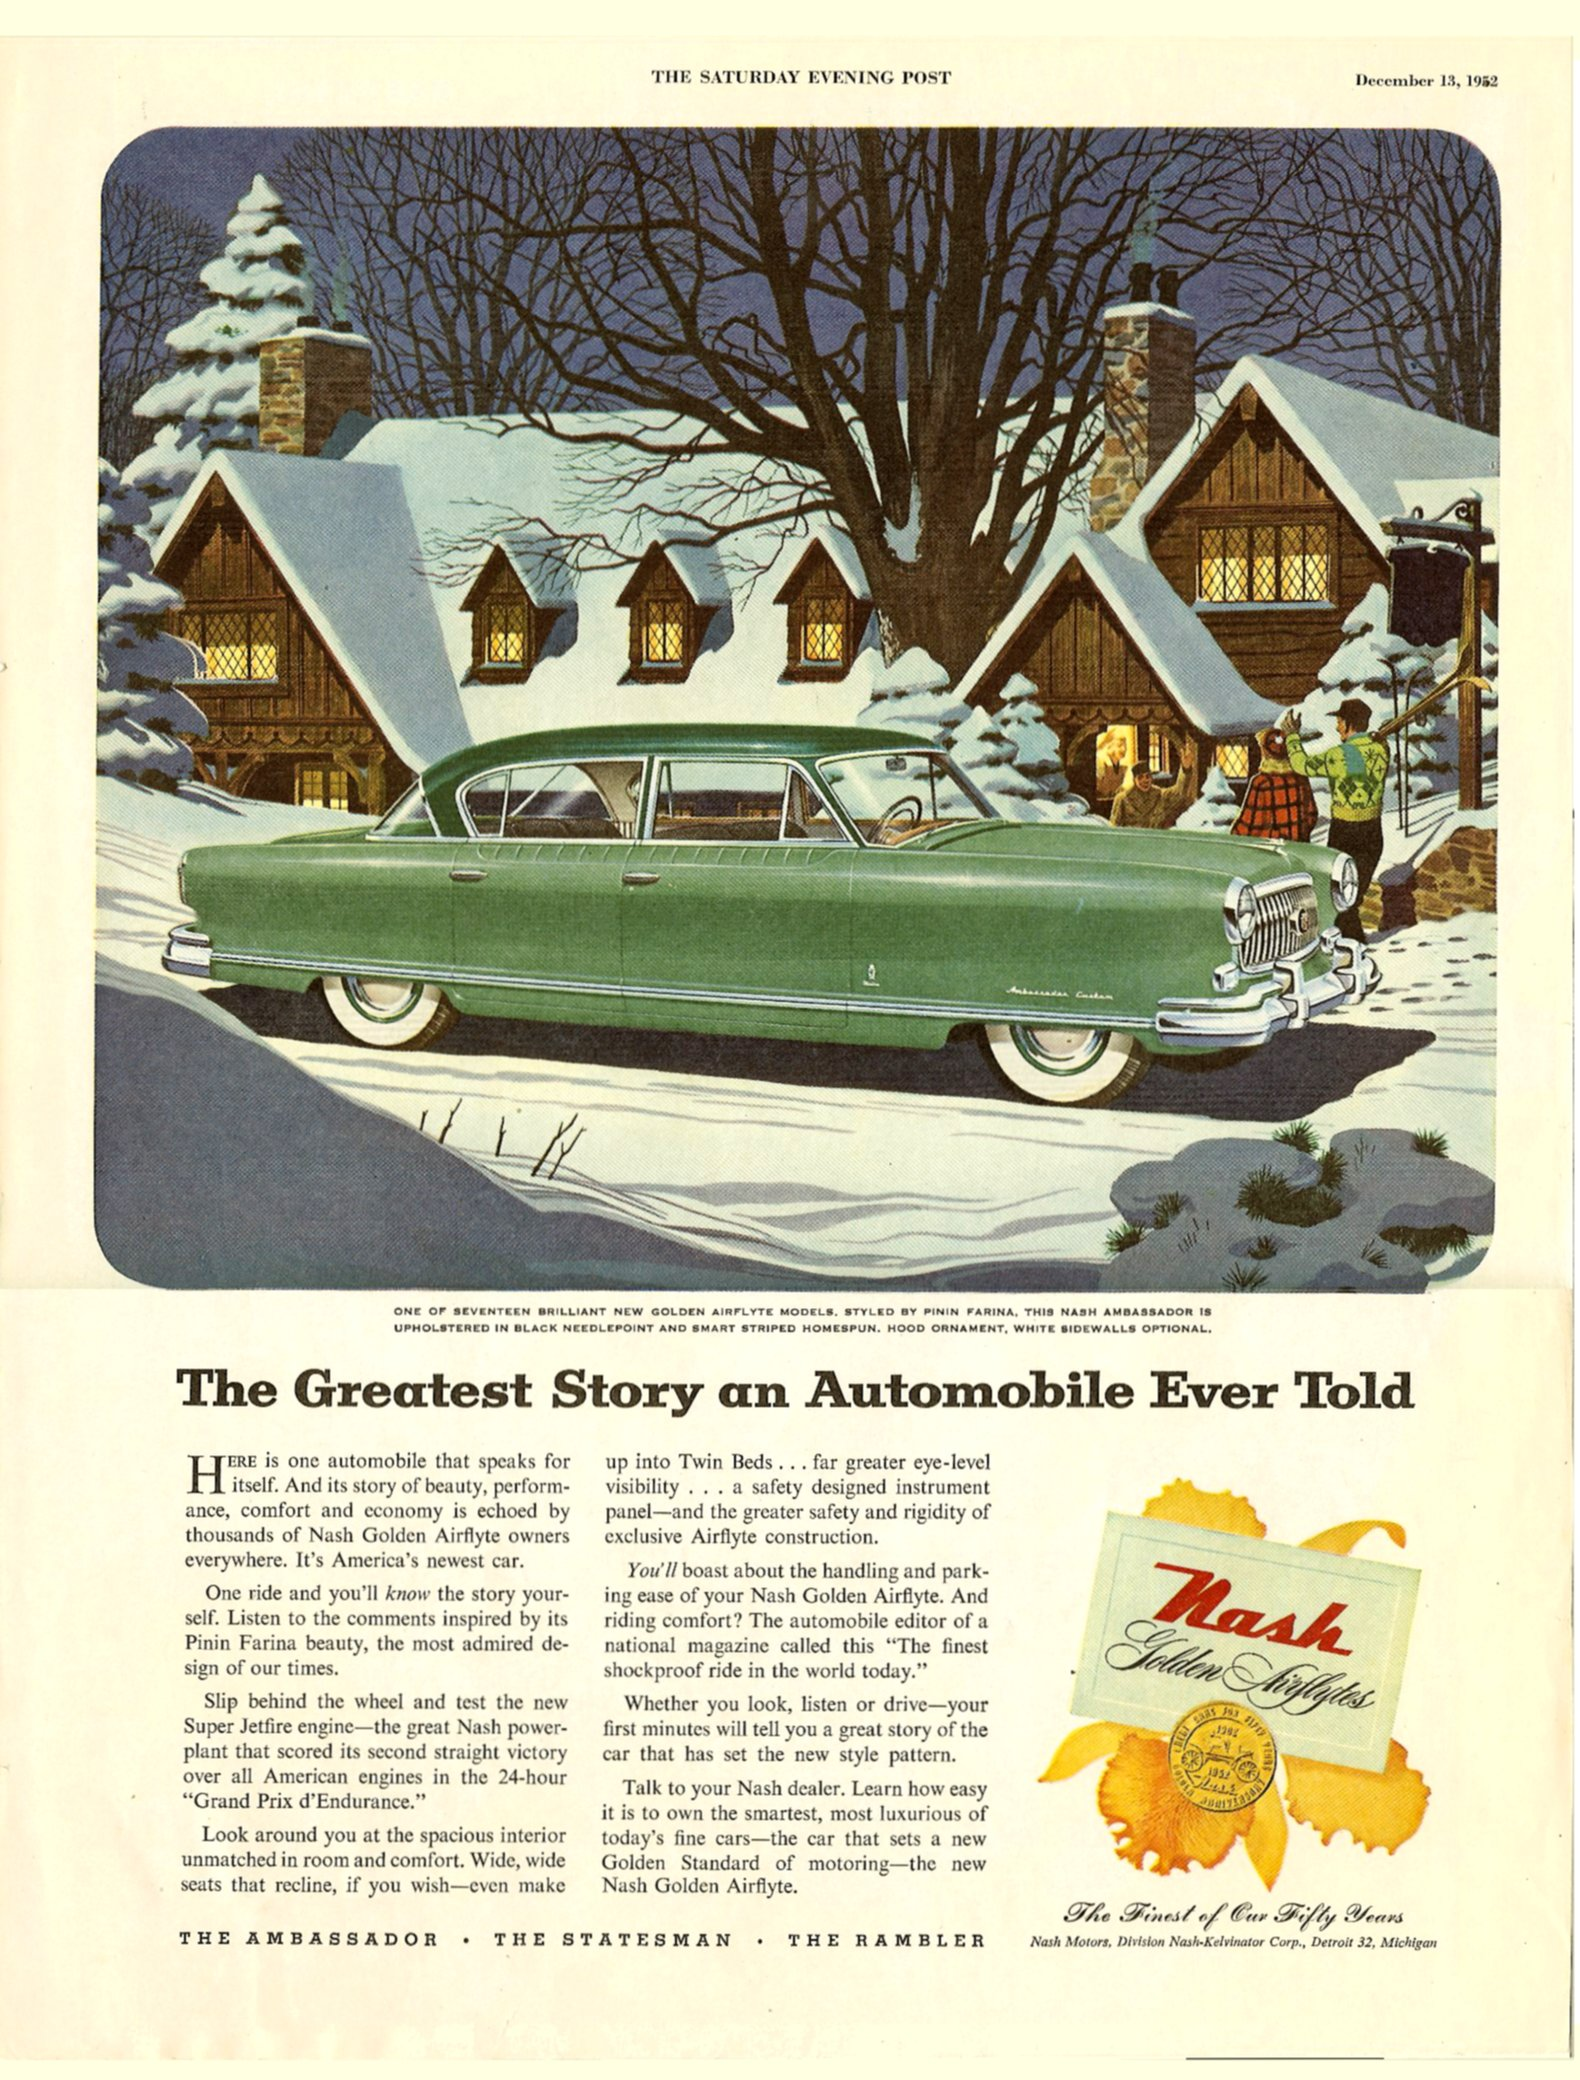 The Greatest Story an Automobile Ever Told The Saturday Evening POST December 13, 1952 Inside front cover, 10.5″x13.75″